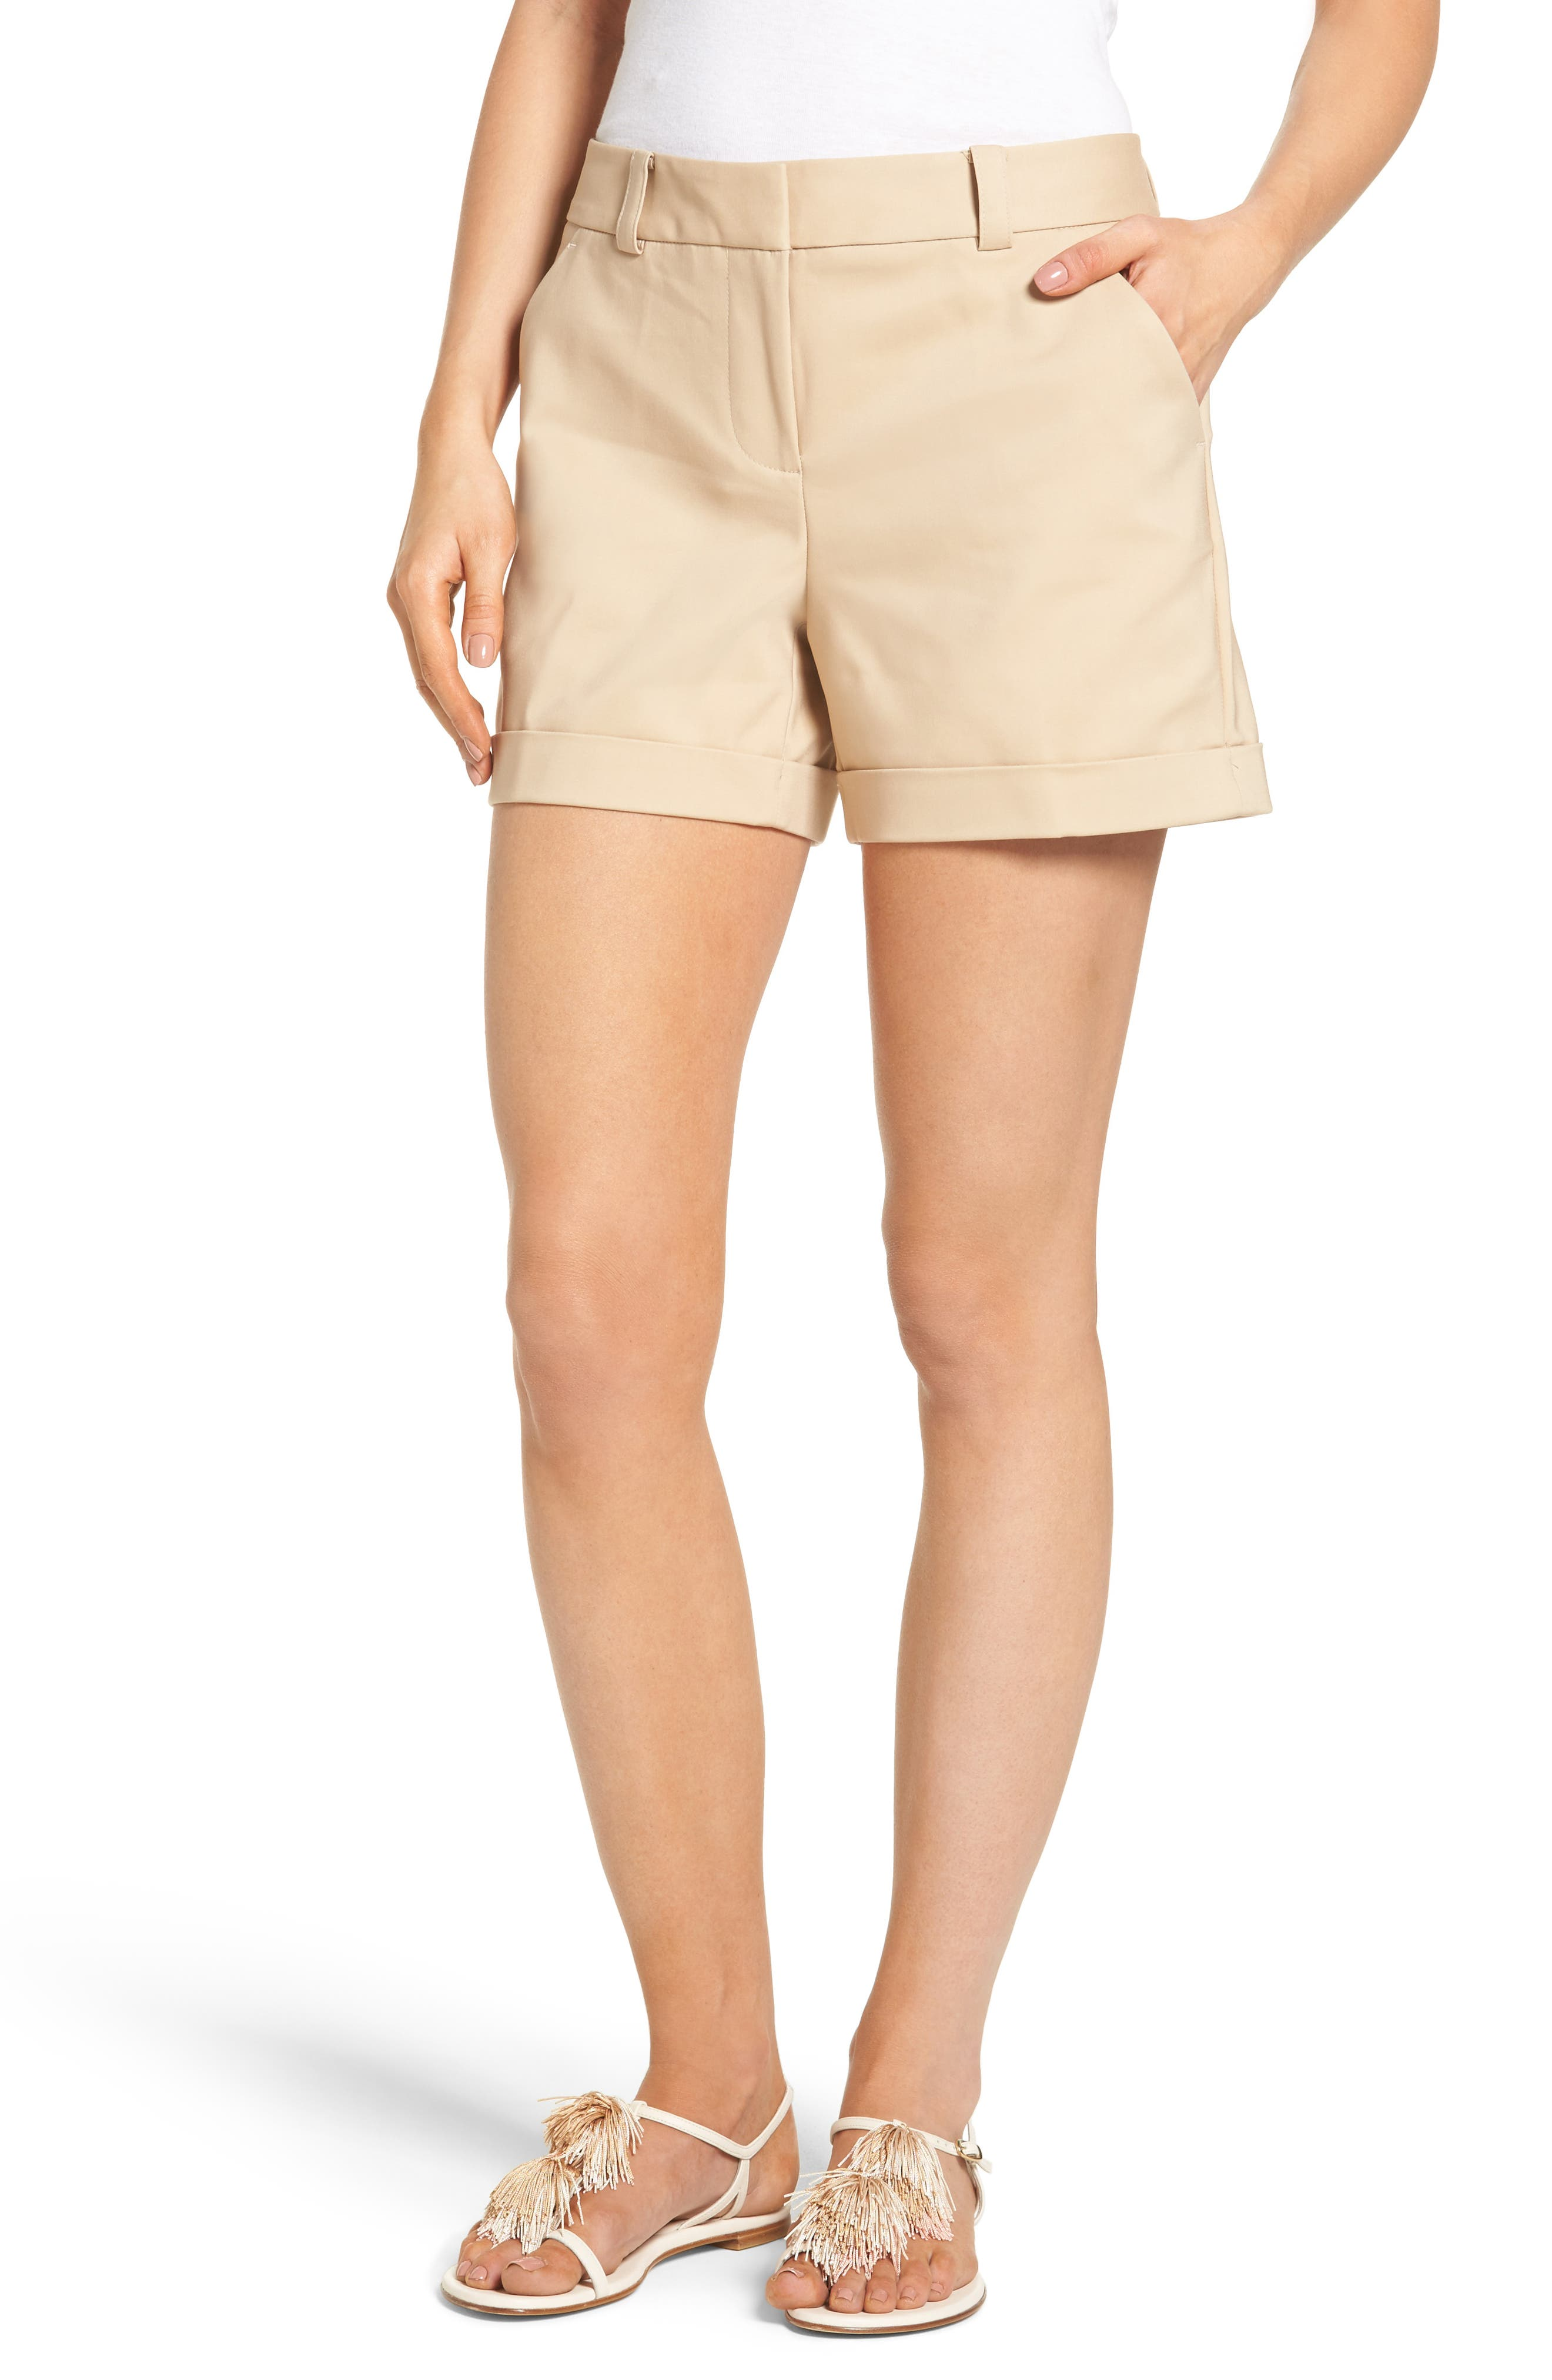 Alternate Image 1 Selected - Vince Camuto Cuffed Shorts